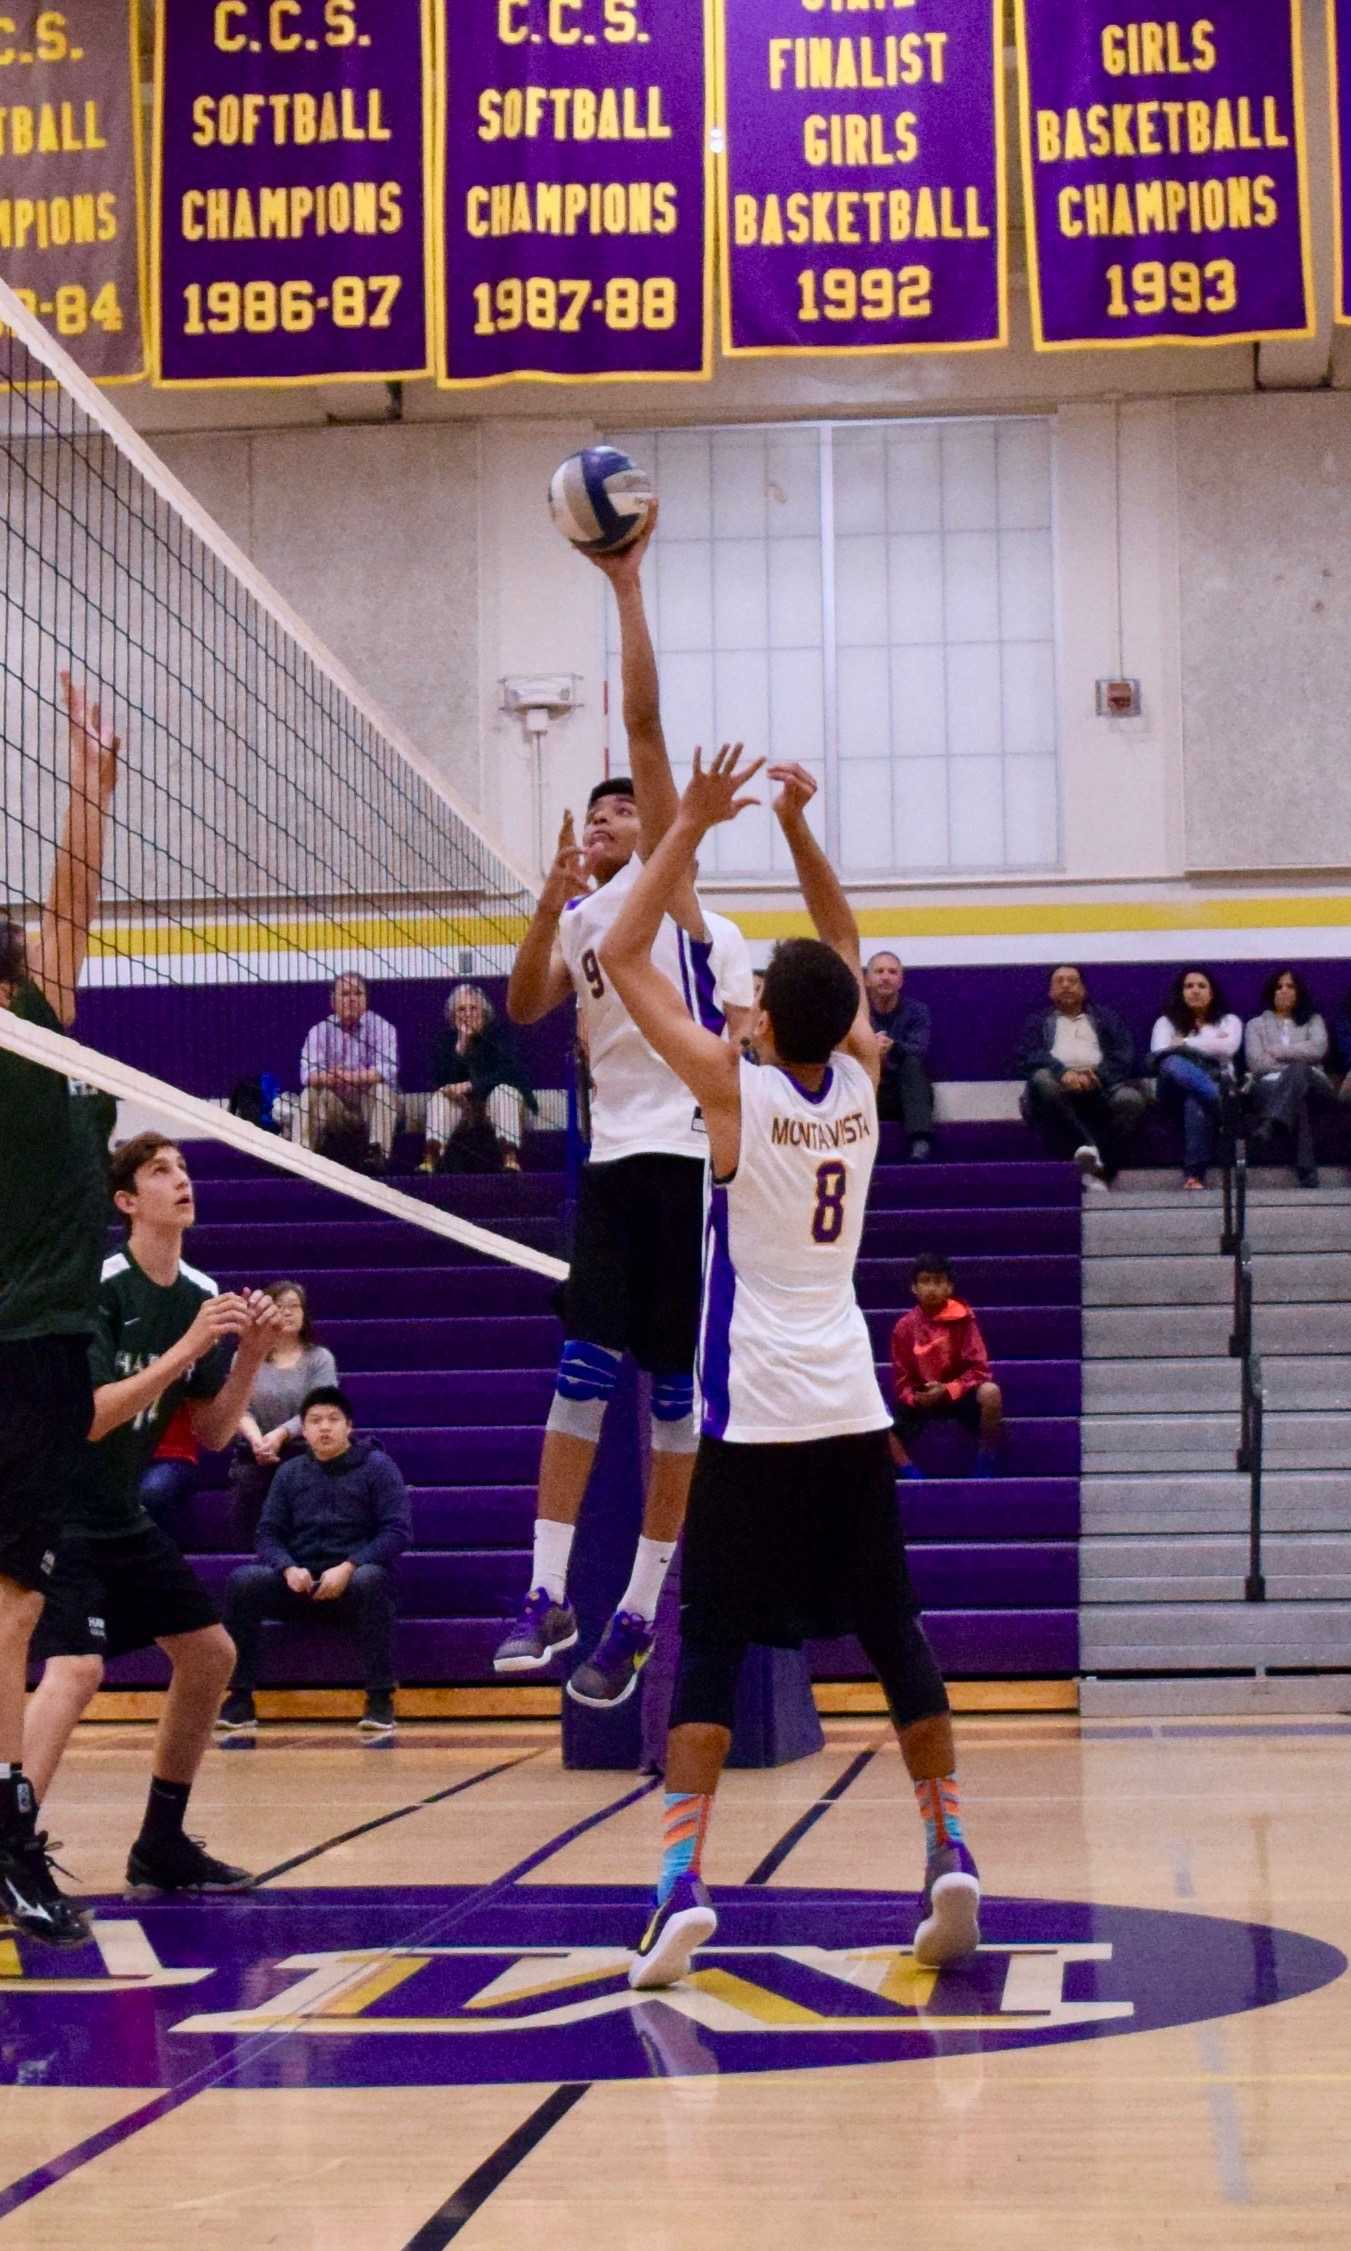 PHOTOS Vball vs Harker - 7